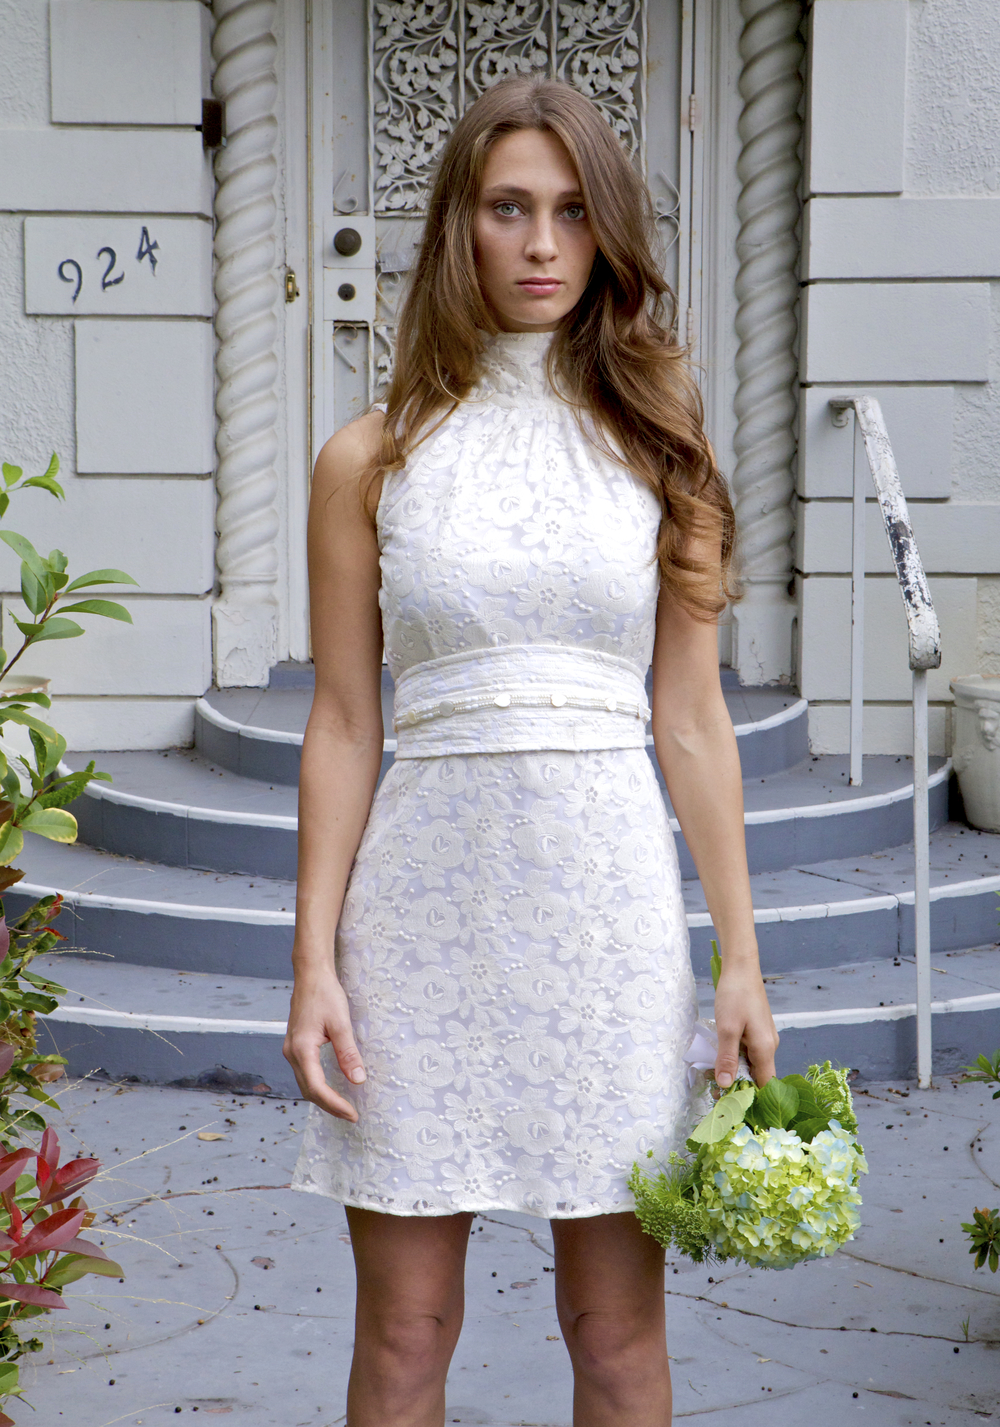 Lace Bridal mini dress with beaded obi belt.